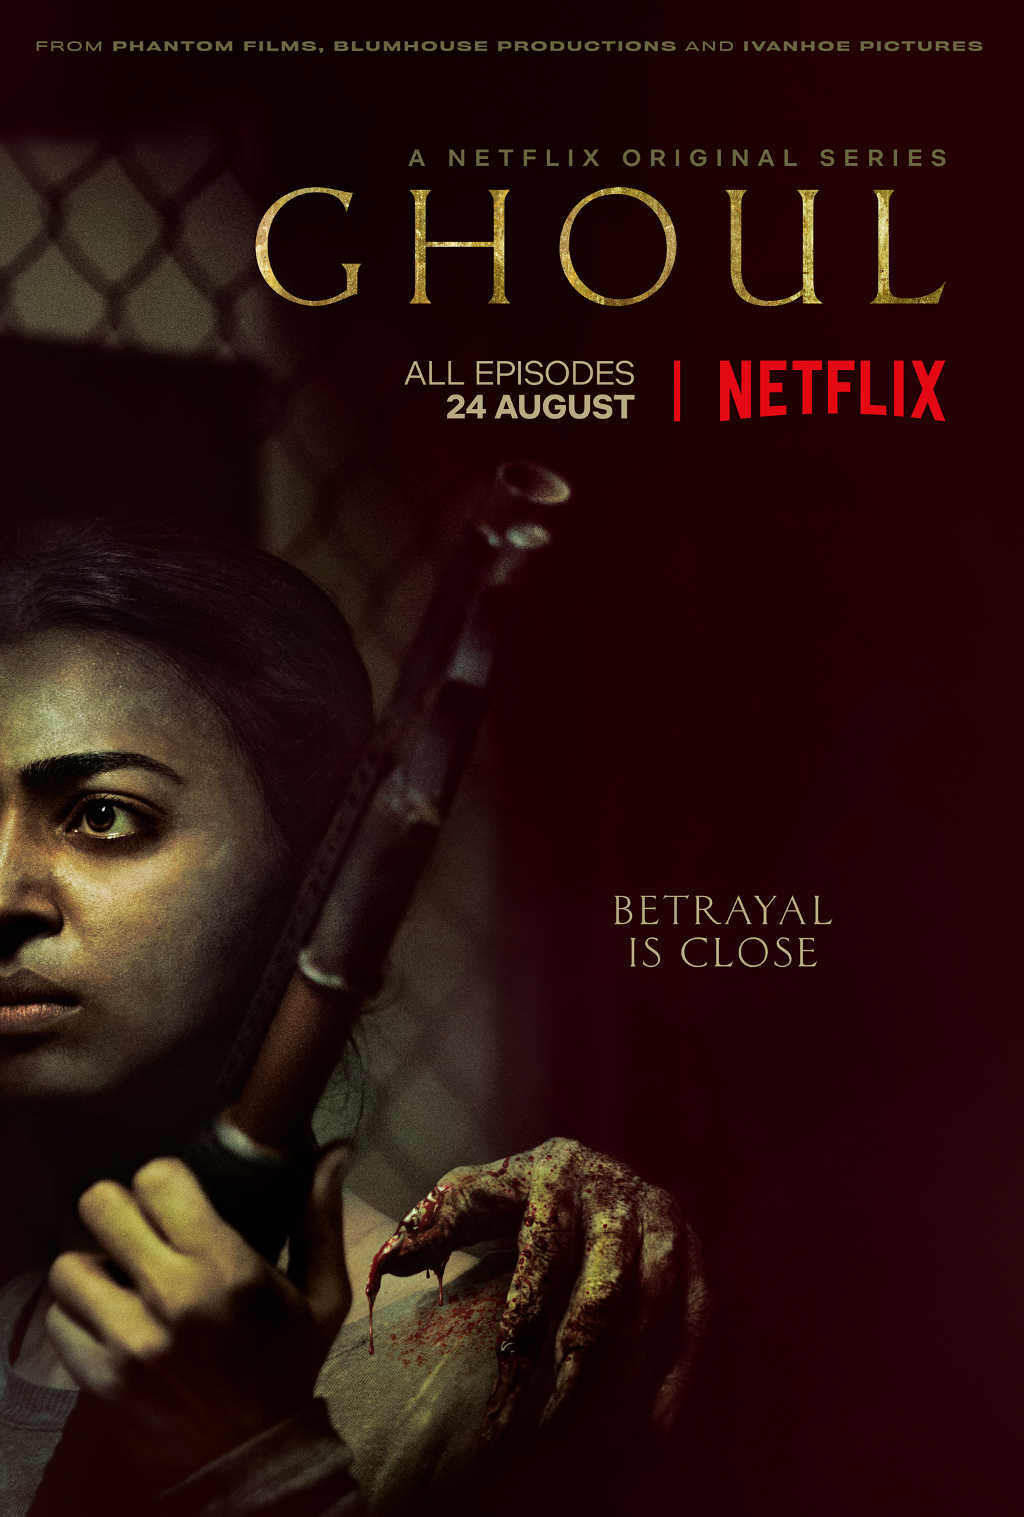 netflix Ghoul s1 poster